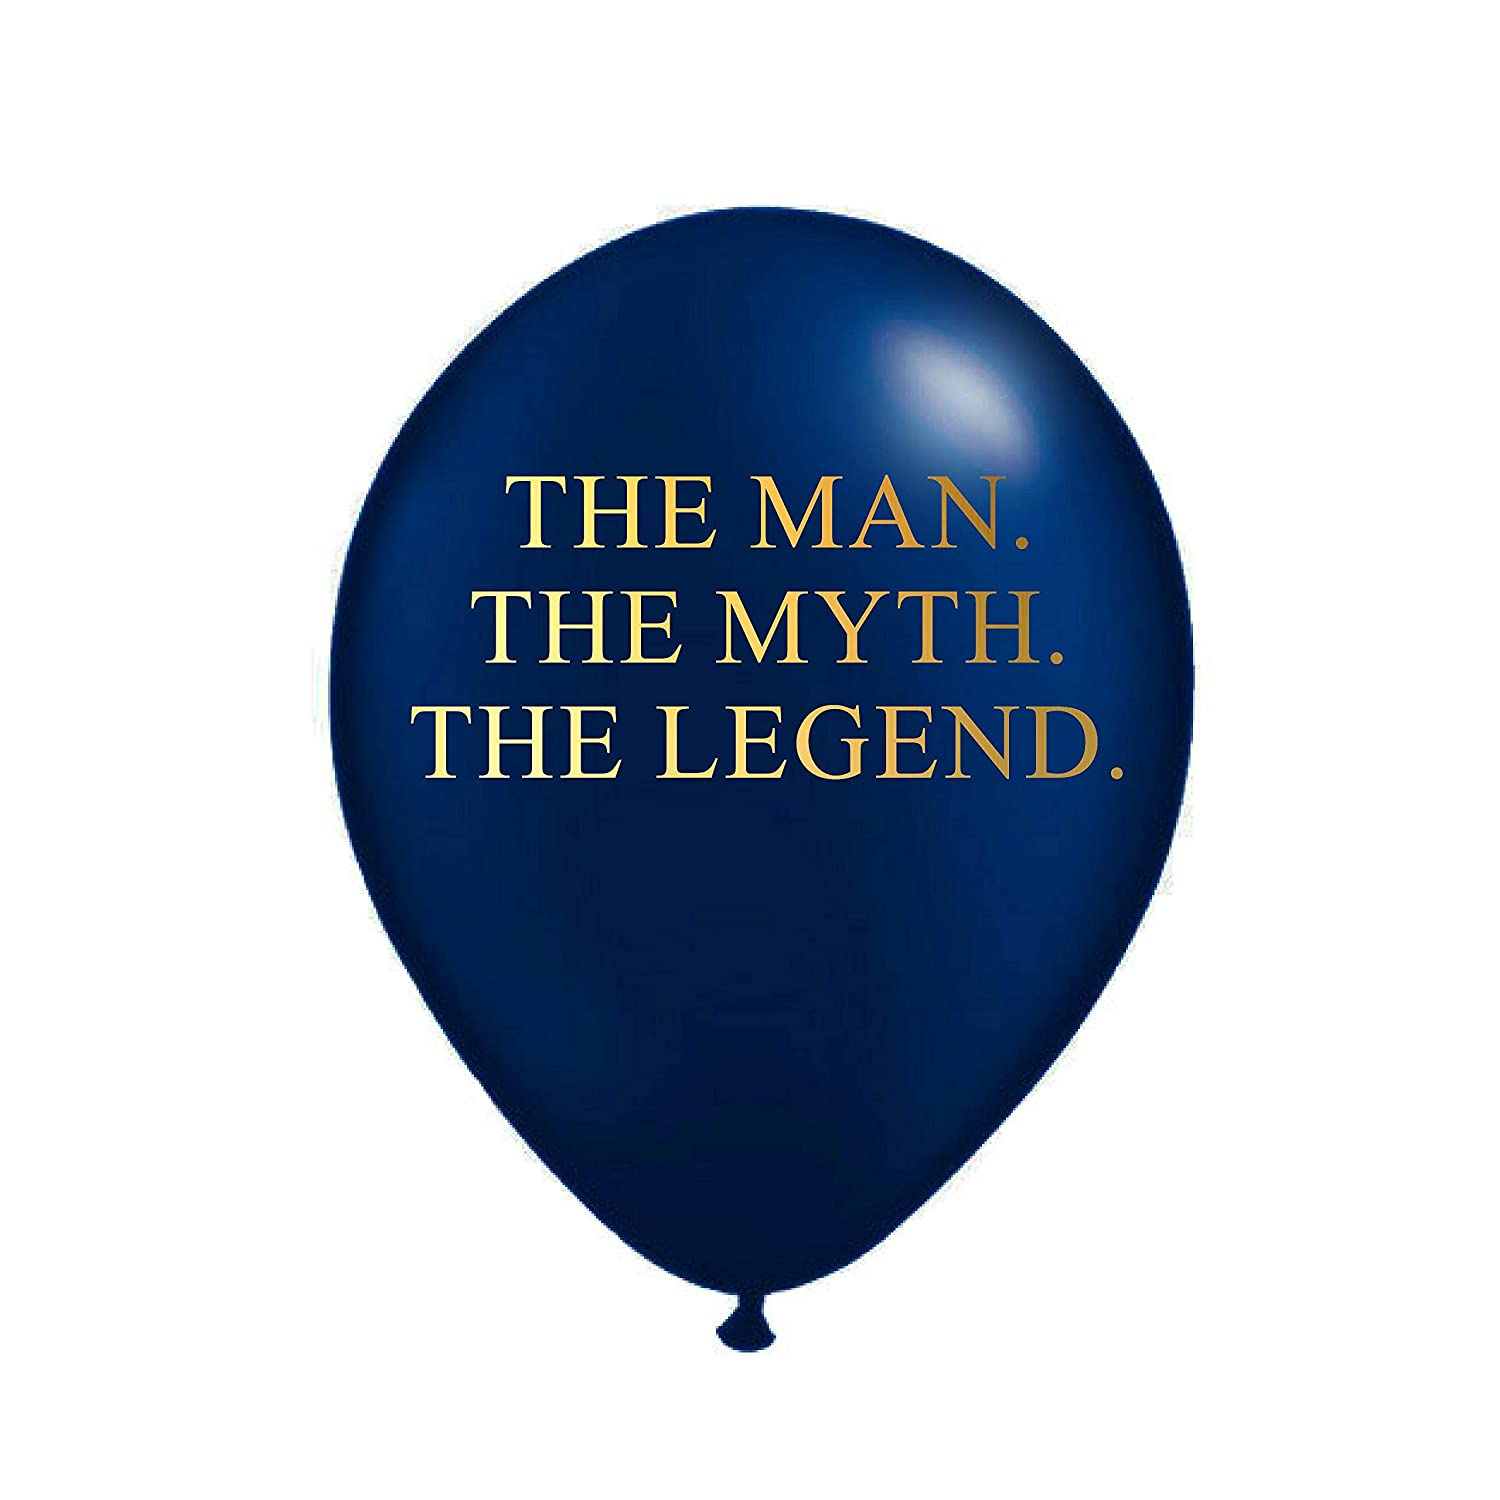 White Rabbits Design The Man Myth Legend Balloons In Navy Blue And Metallic Gold Birthday Party Decorations For Him Funny